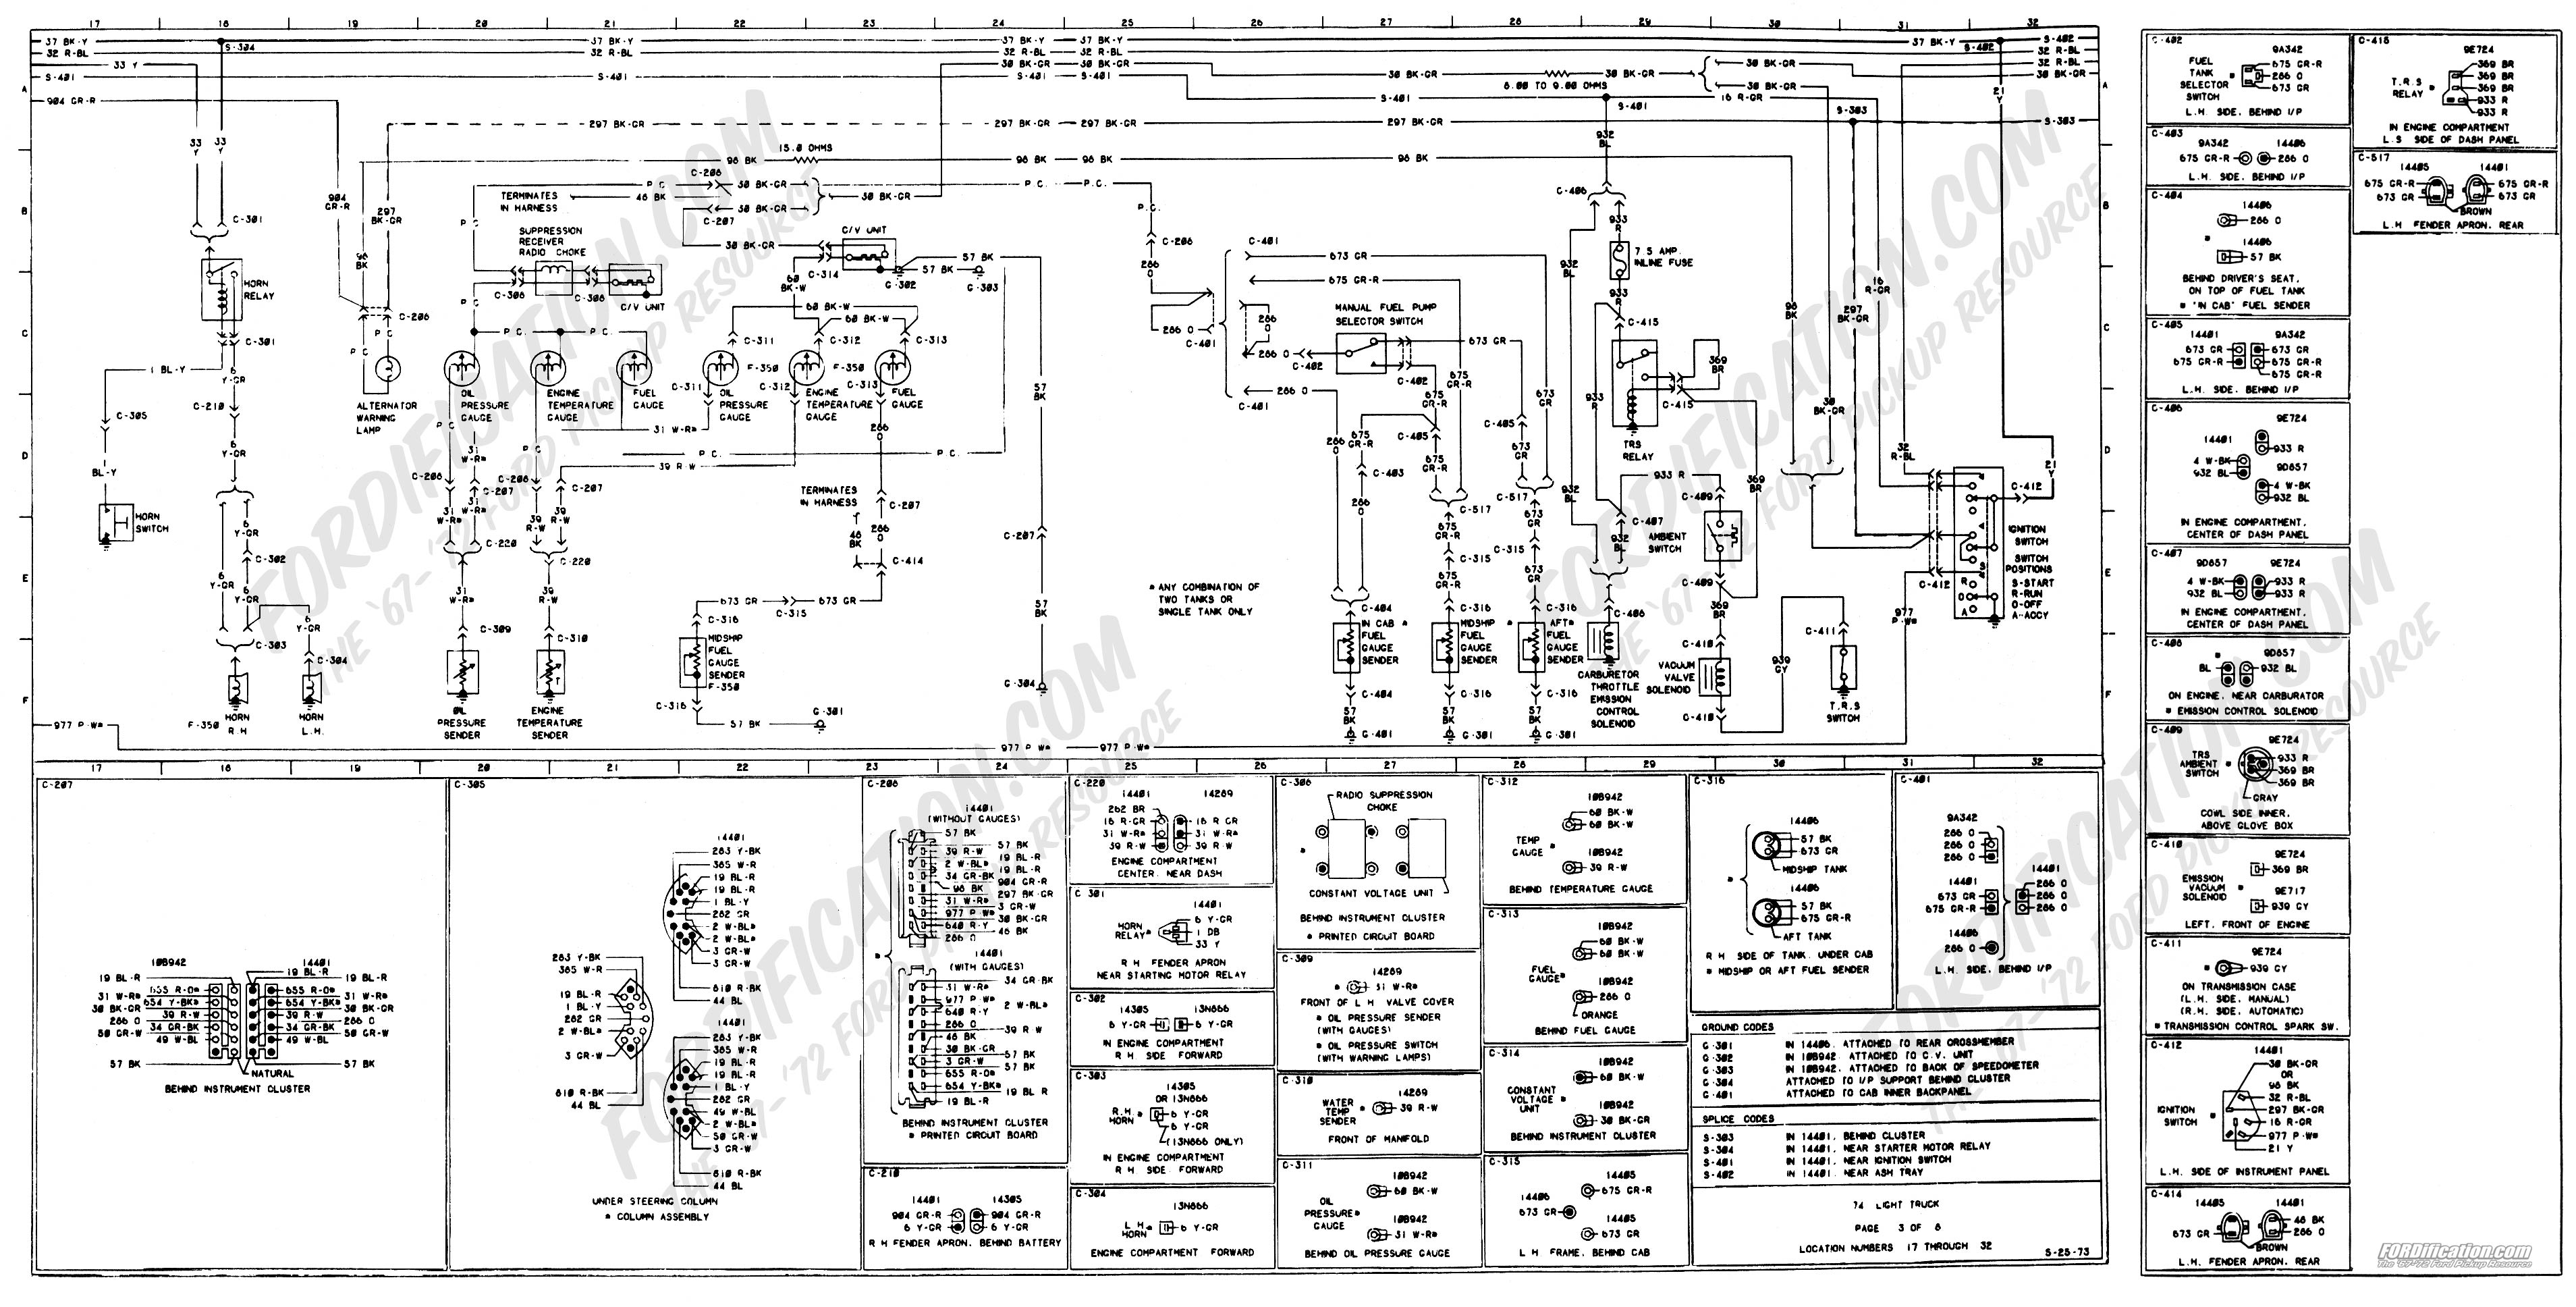 wiring_74master_3of8 1973 1979 ford truck wiring diagrams & schematics fordification net 1979 ford truck fuse box diagram at nearapp.co